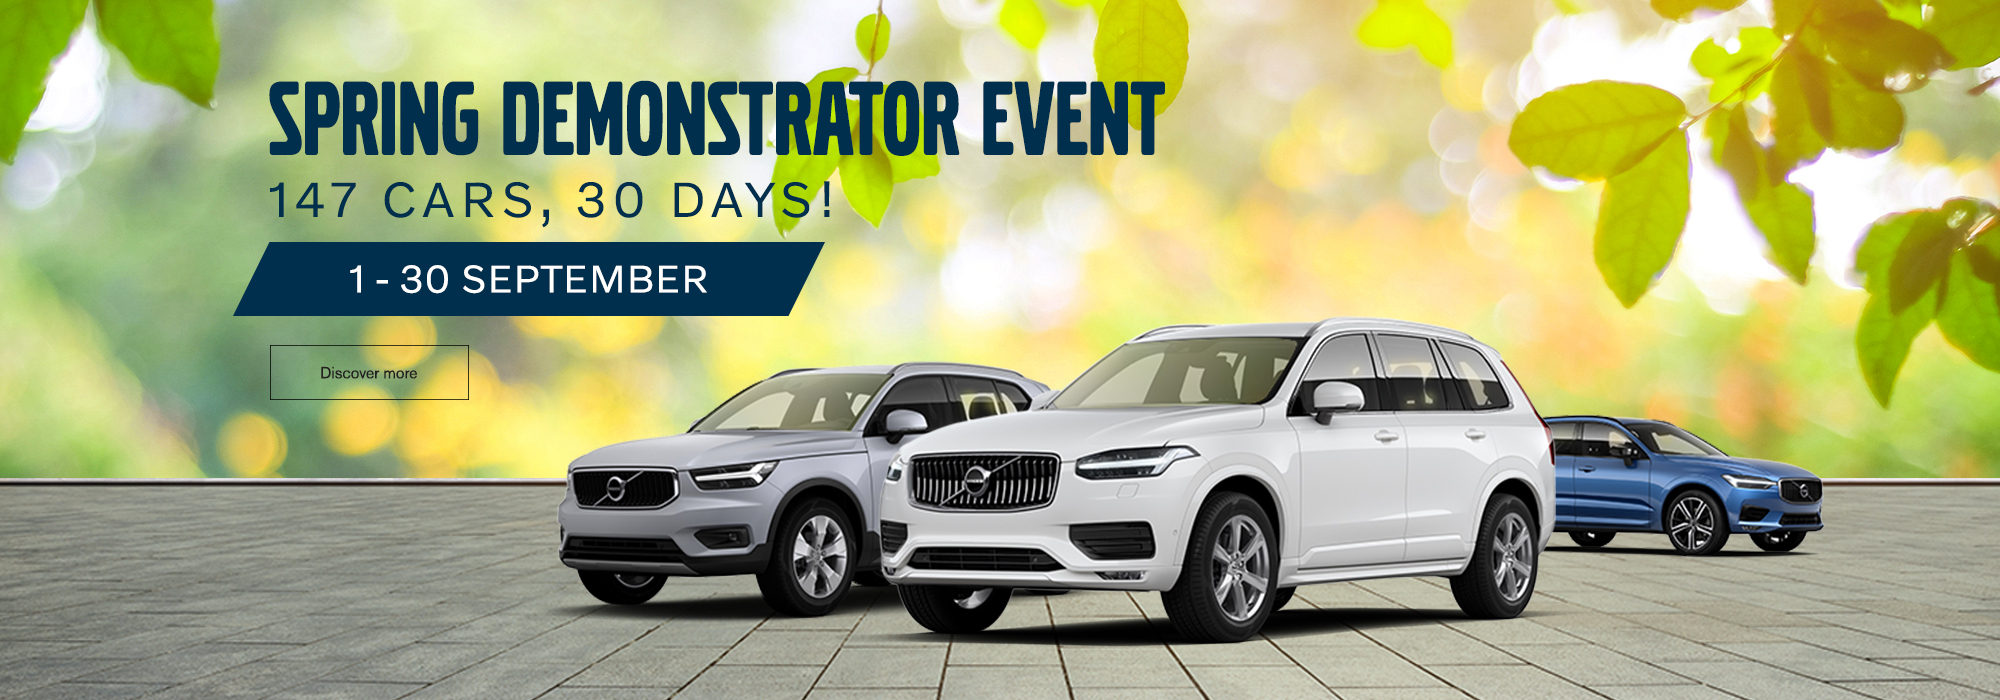 Volvo Spring Demonstrator Event